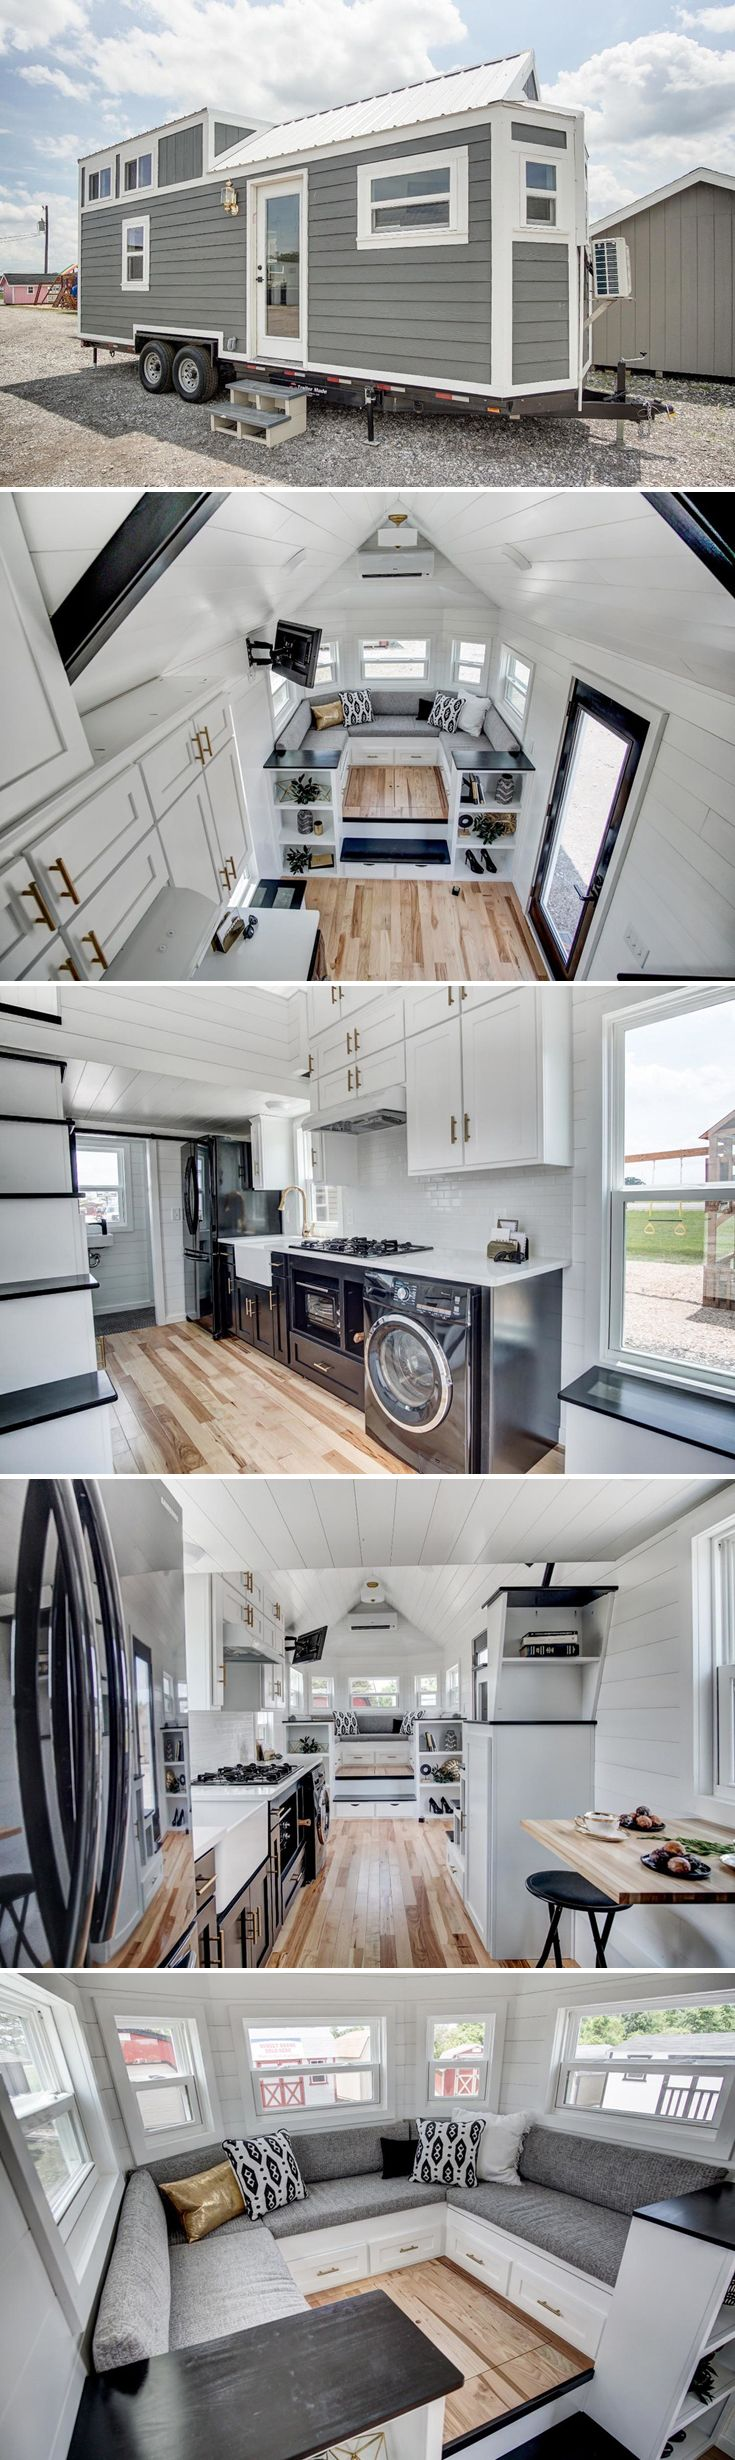 2014 Best Tiny House Dreamin 39 Images On Pinterest